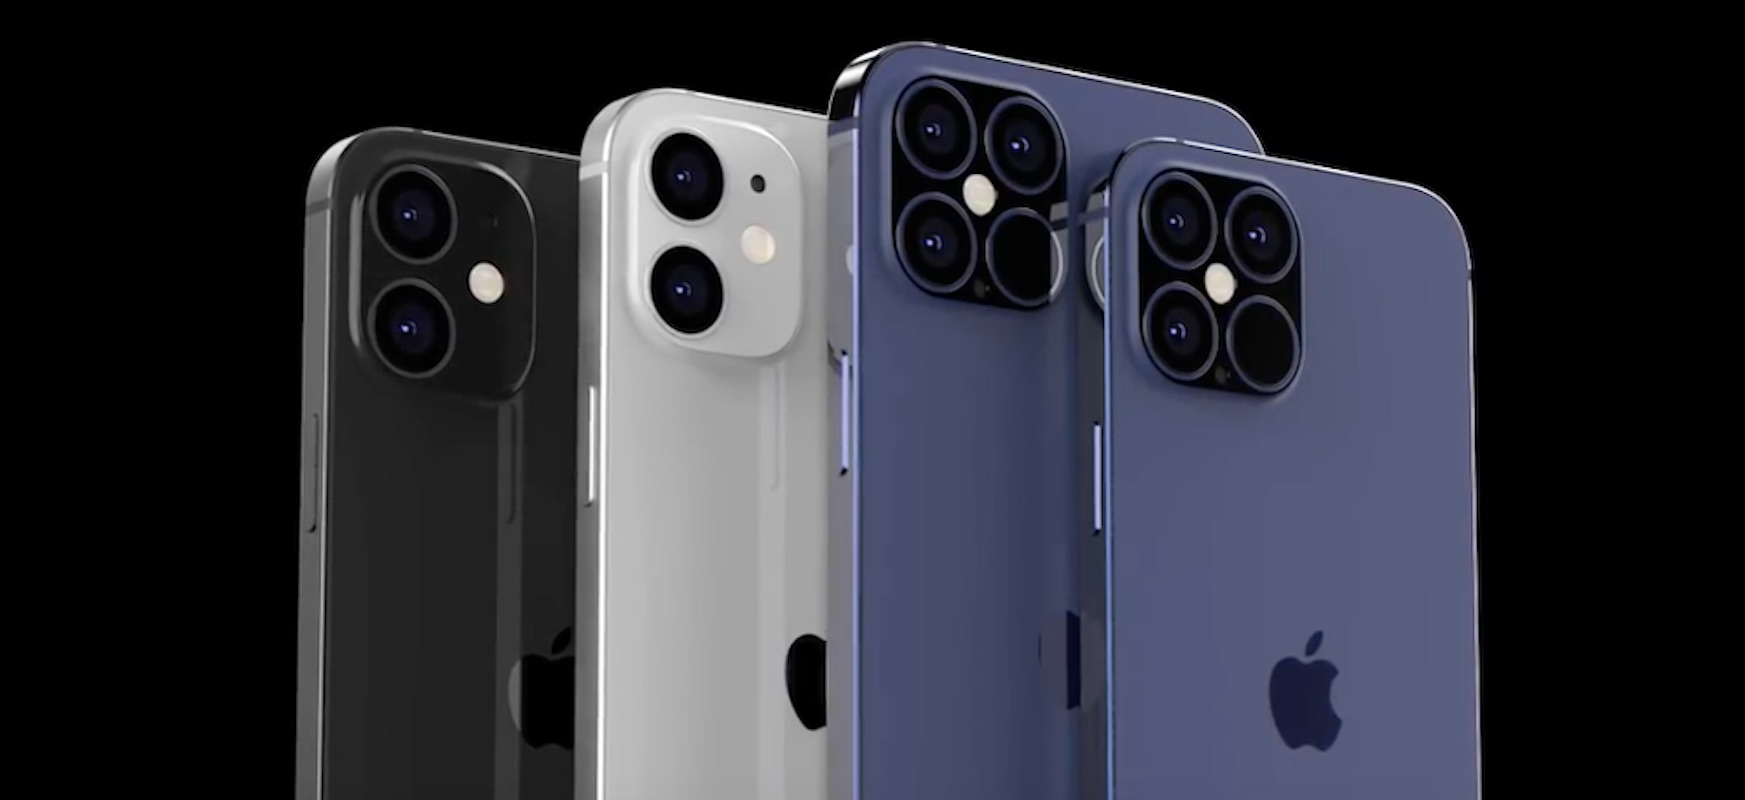 Here should be a photo of iPhone 12.